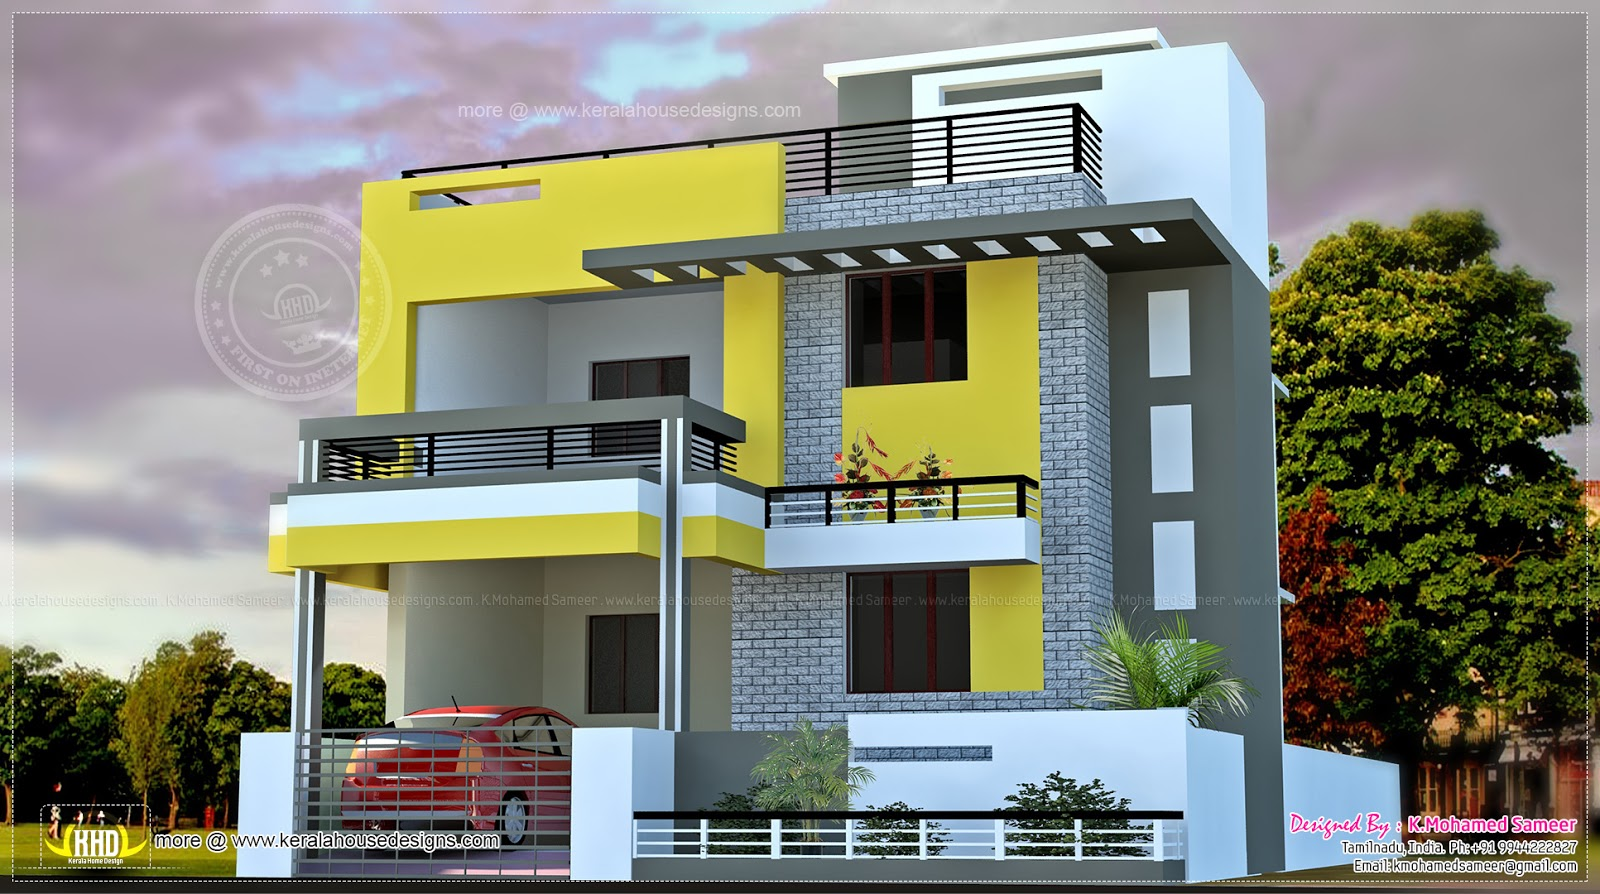 June 2013 kerala home design and floor plans for Building plans for homes in india